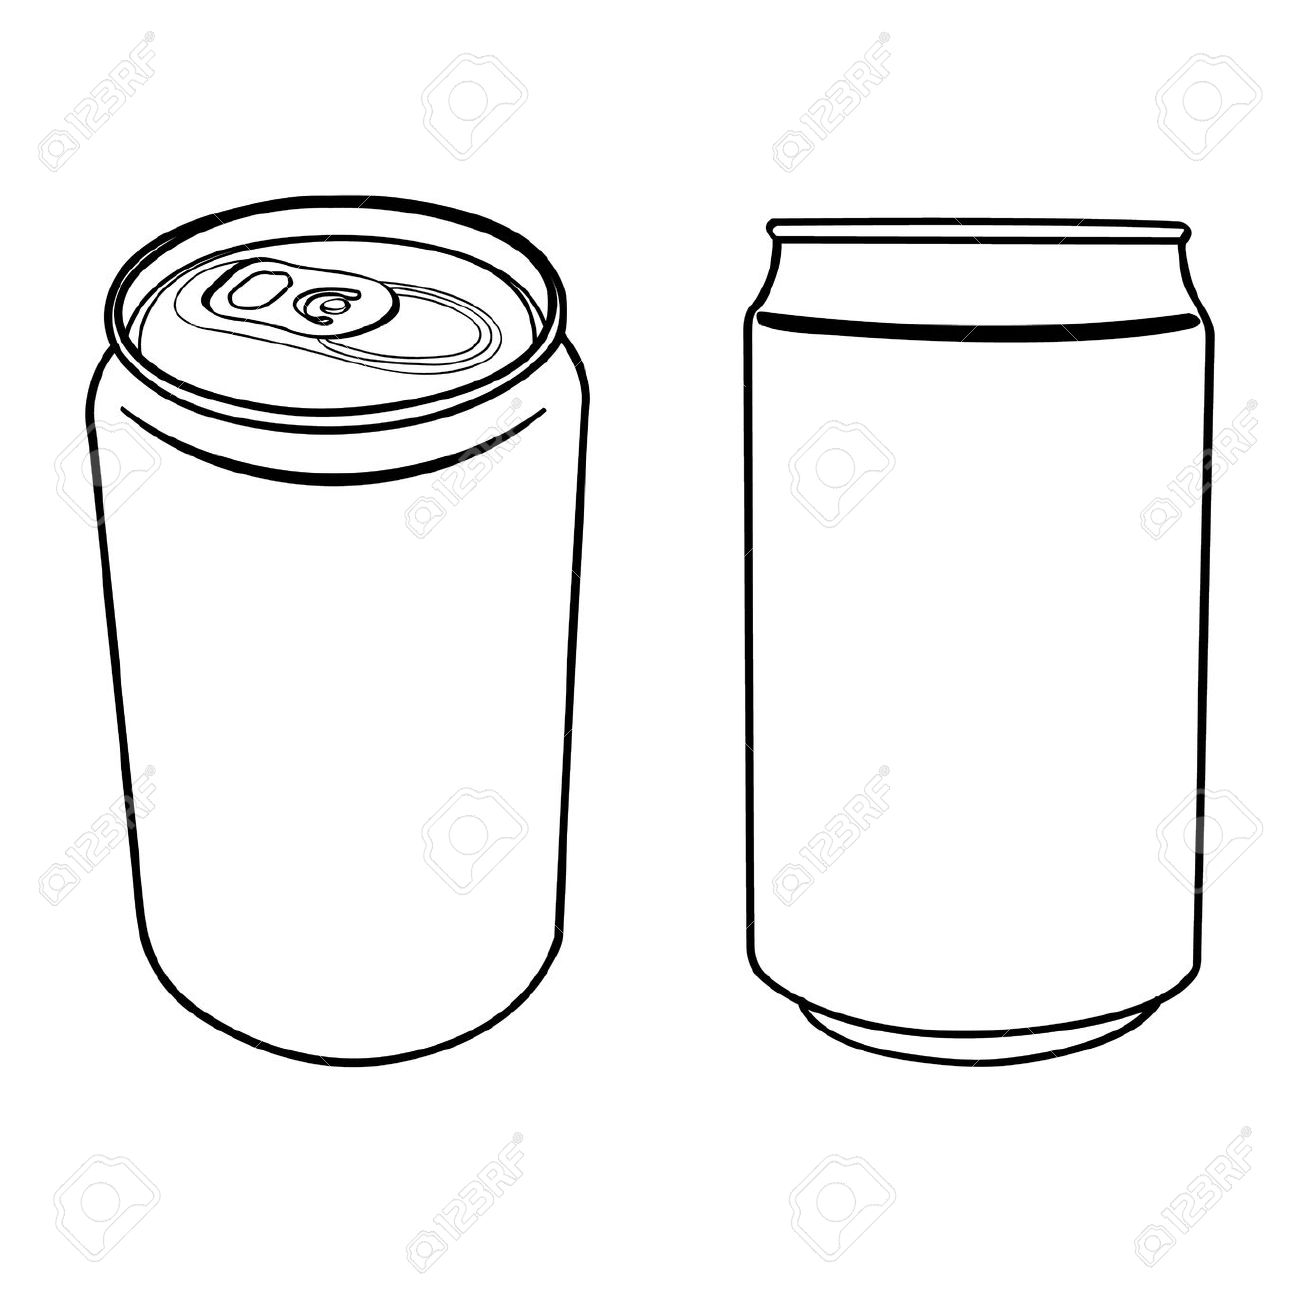 87+ Beer Can Clip Art.